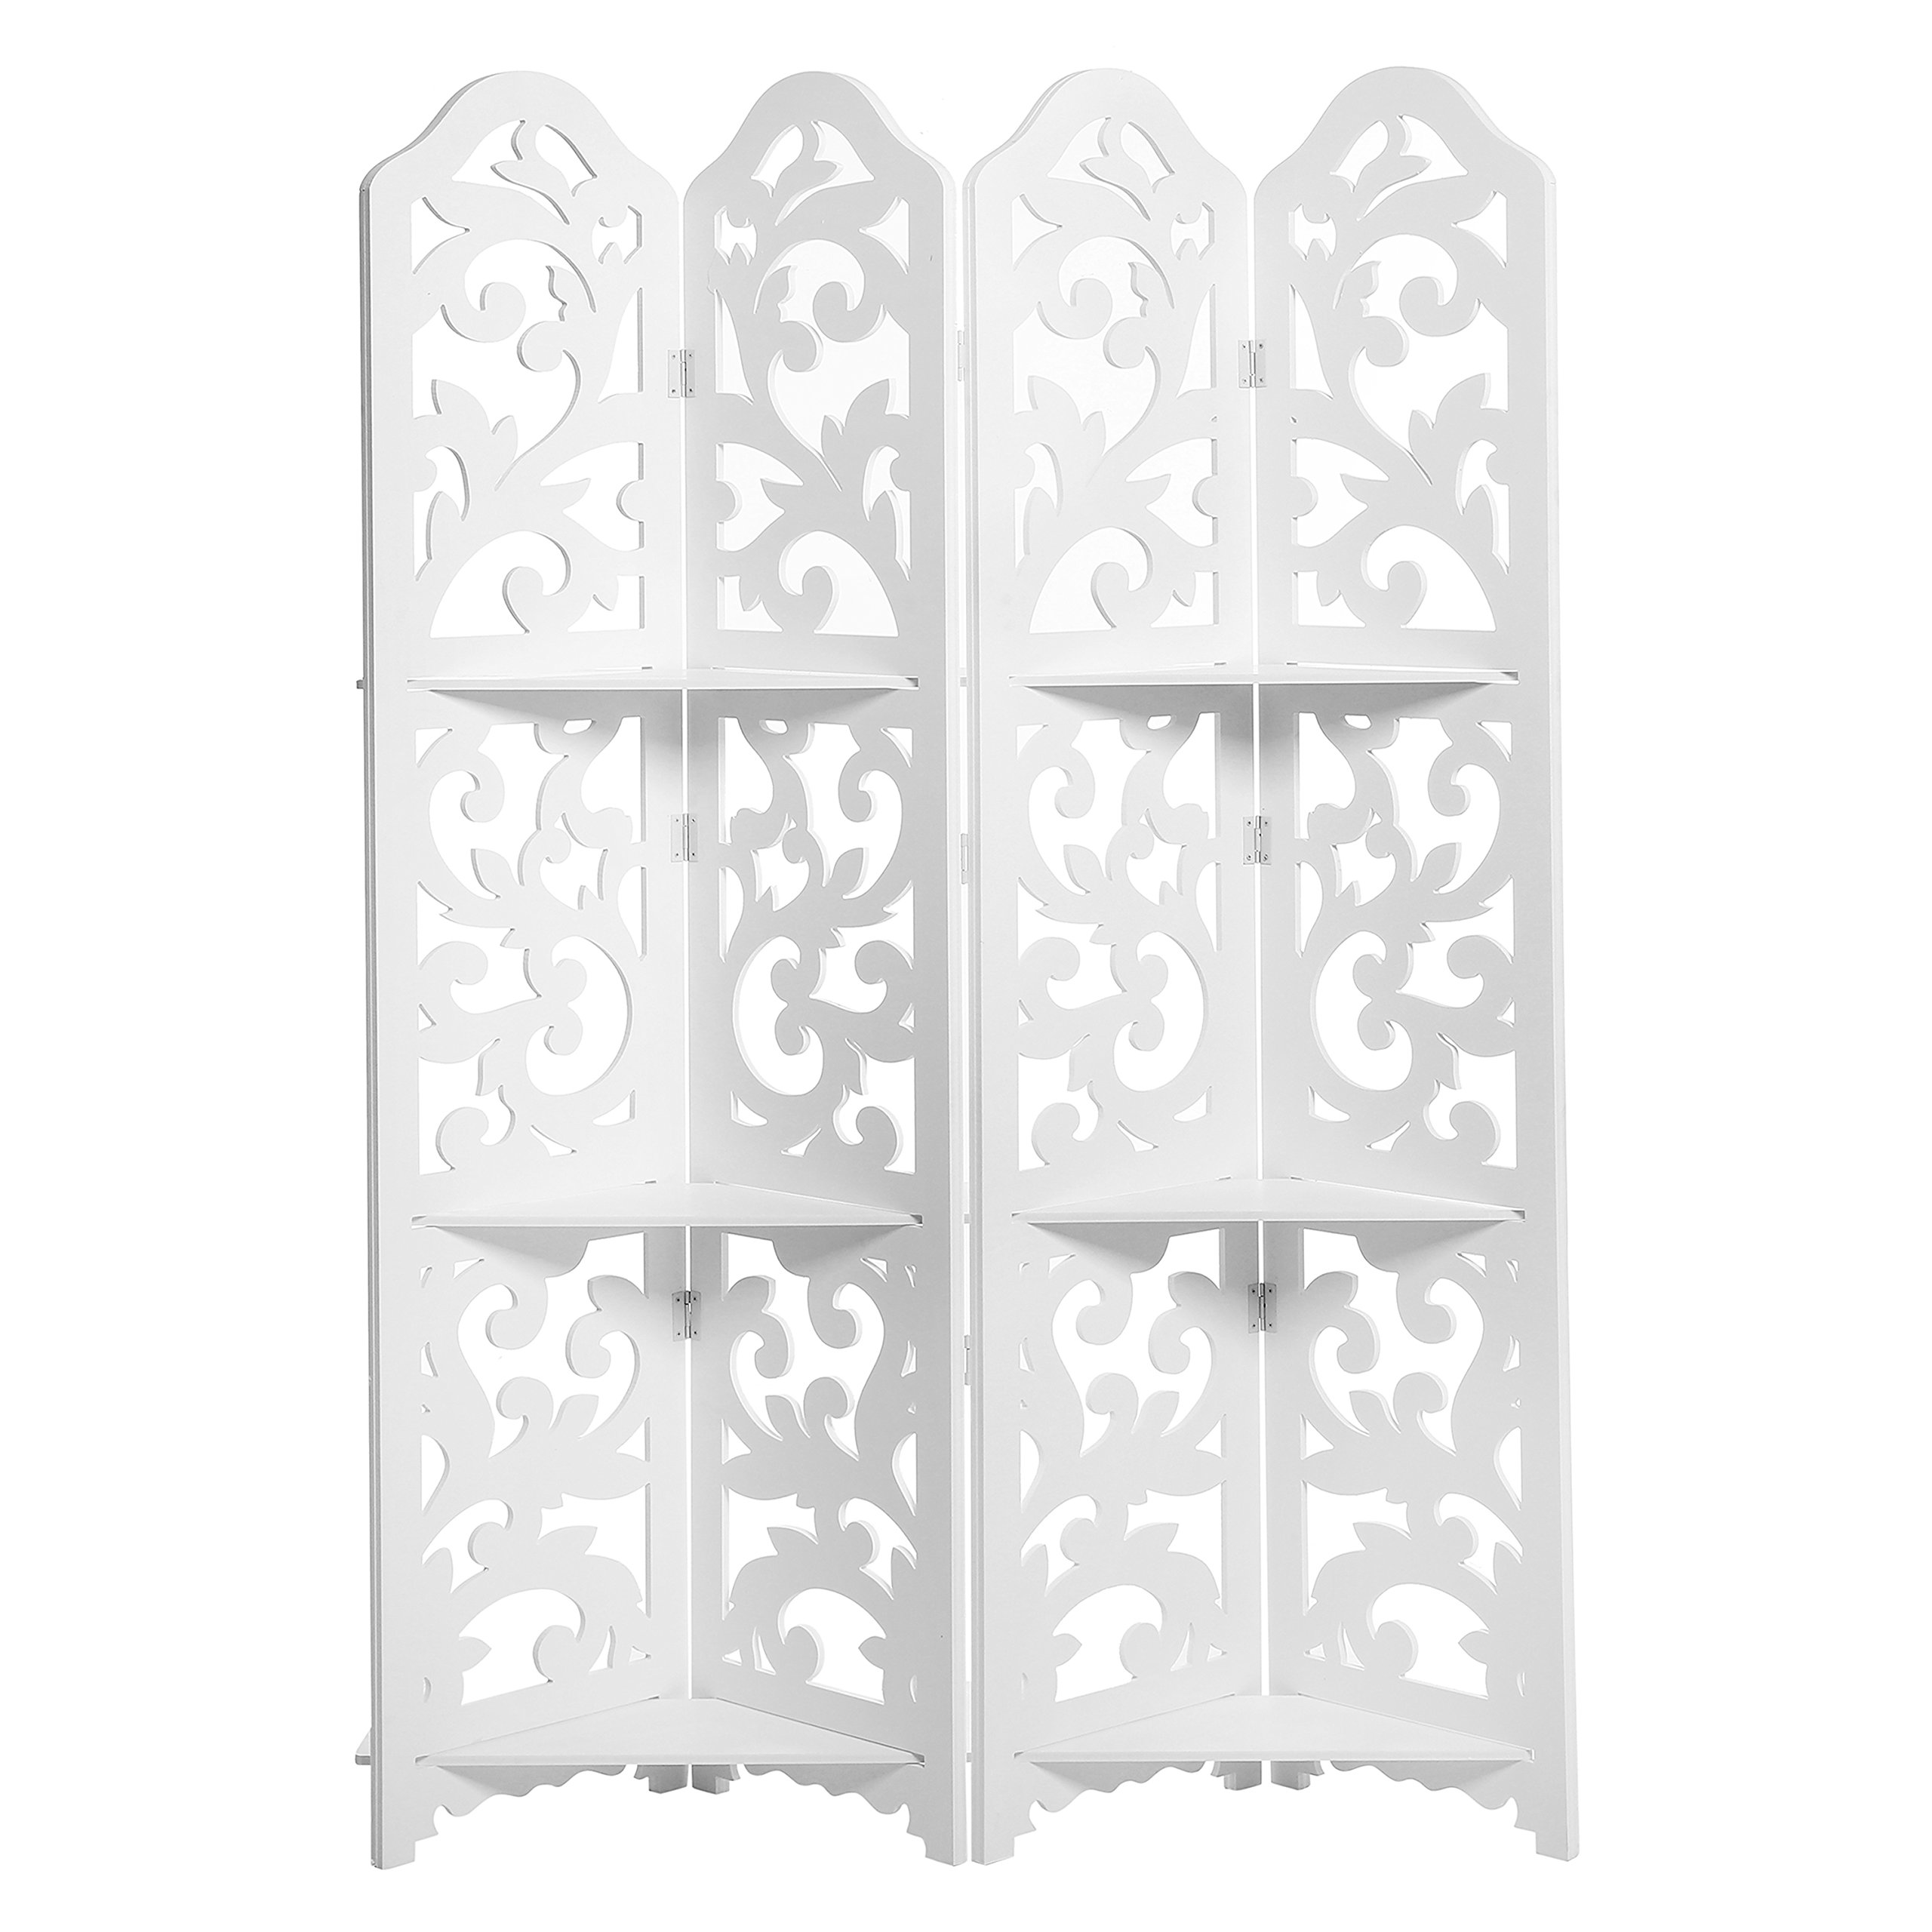 White Wood Floral Cut-Out Design 4-Panel Room Divider with 3 Removable Shelves